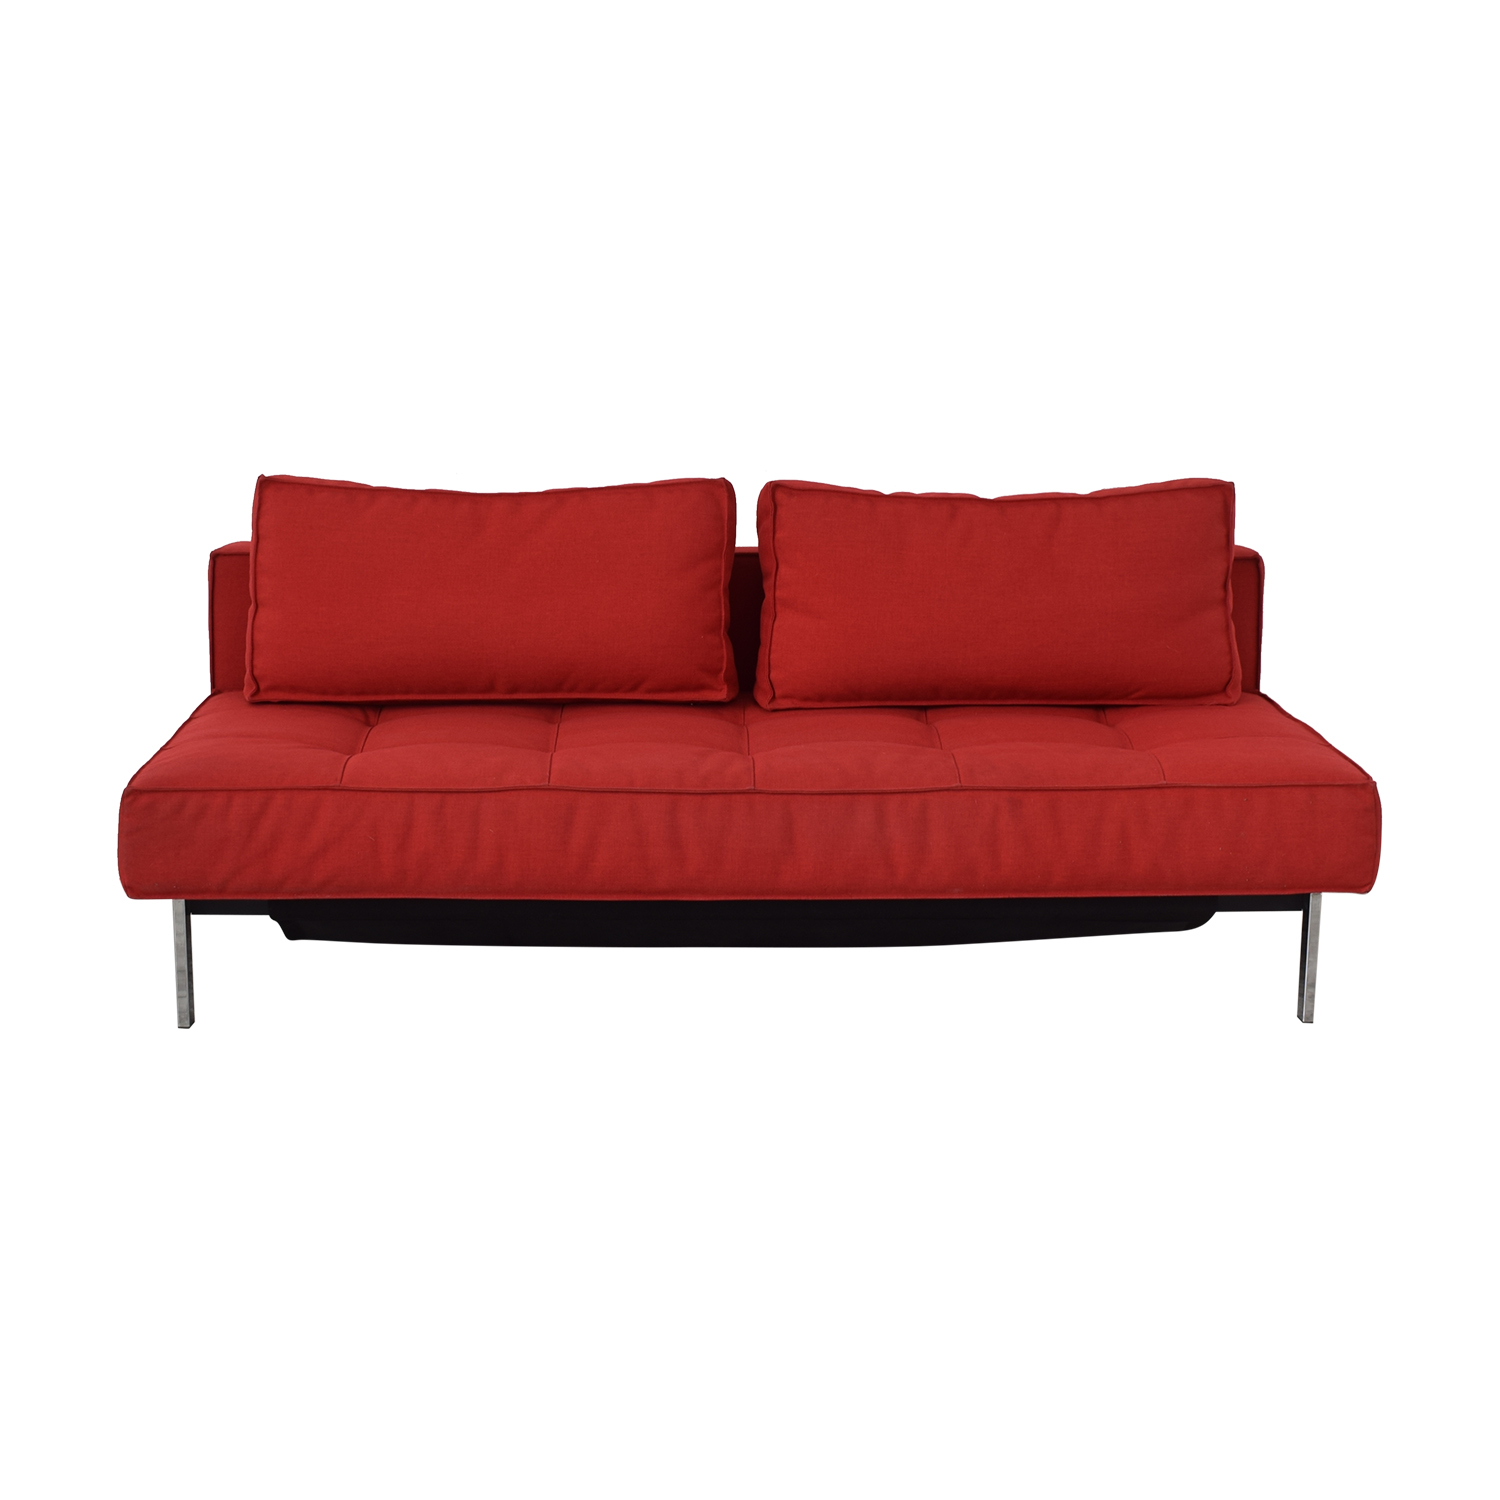 Innovation Living Red Tufted Armless Twin Sofa Bed / Classic Sofas